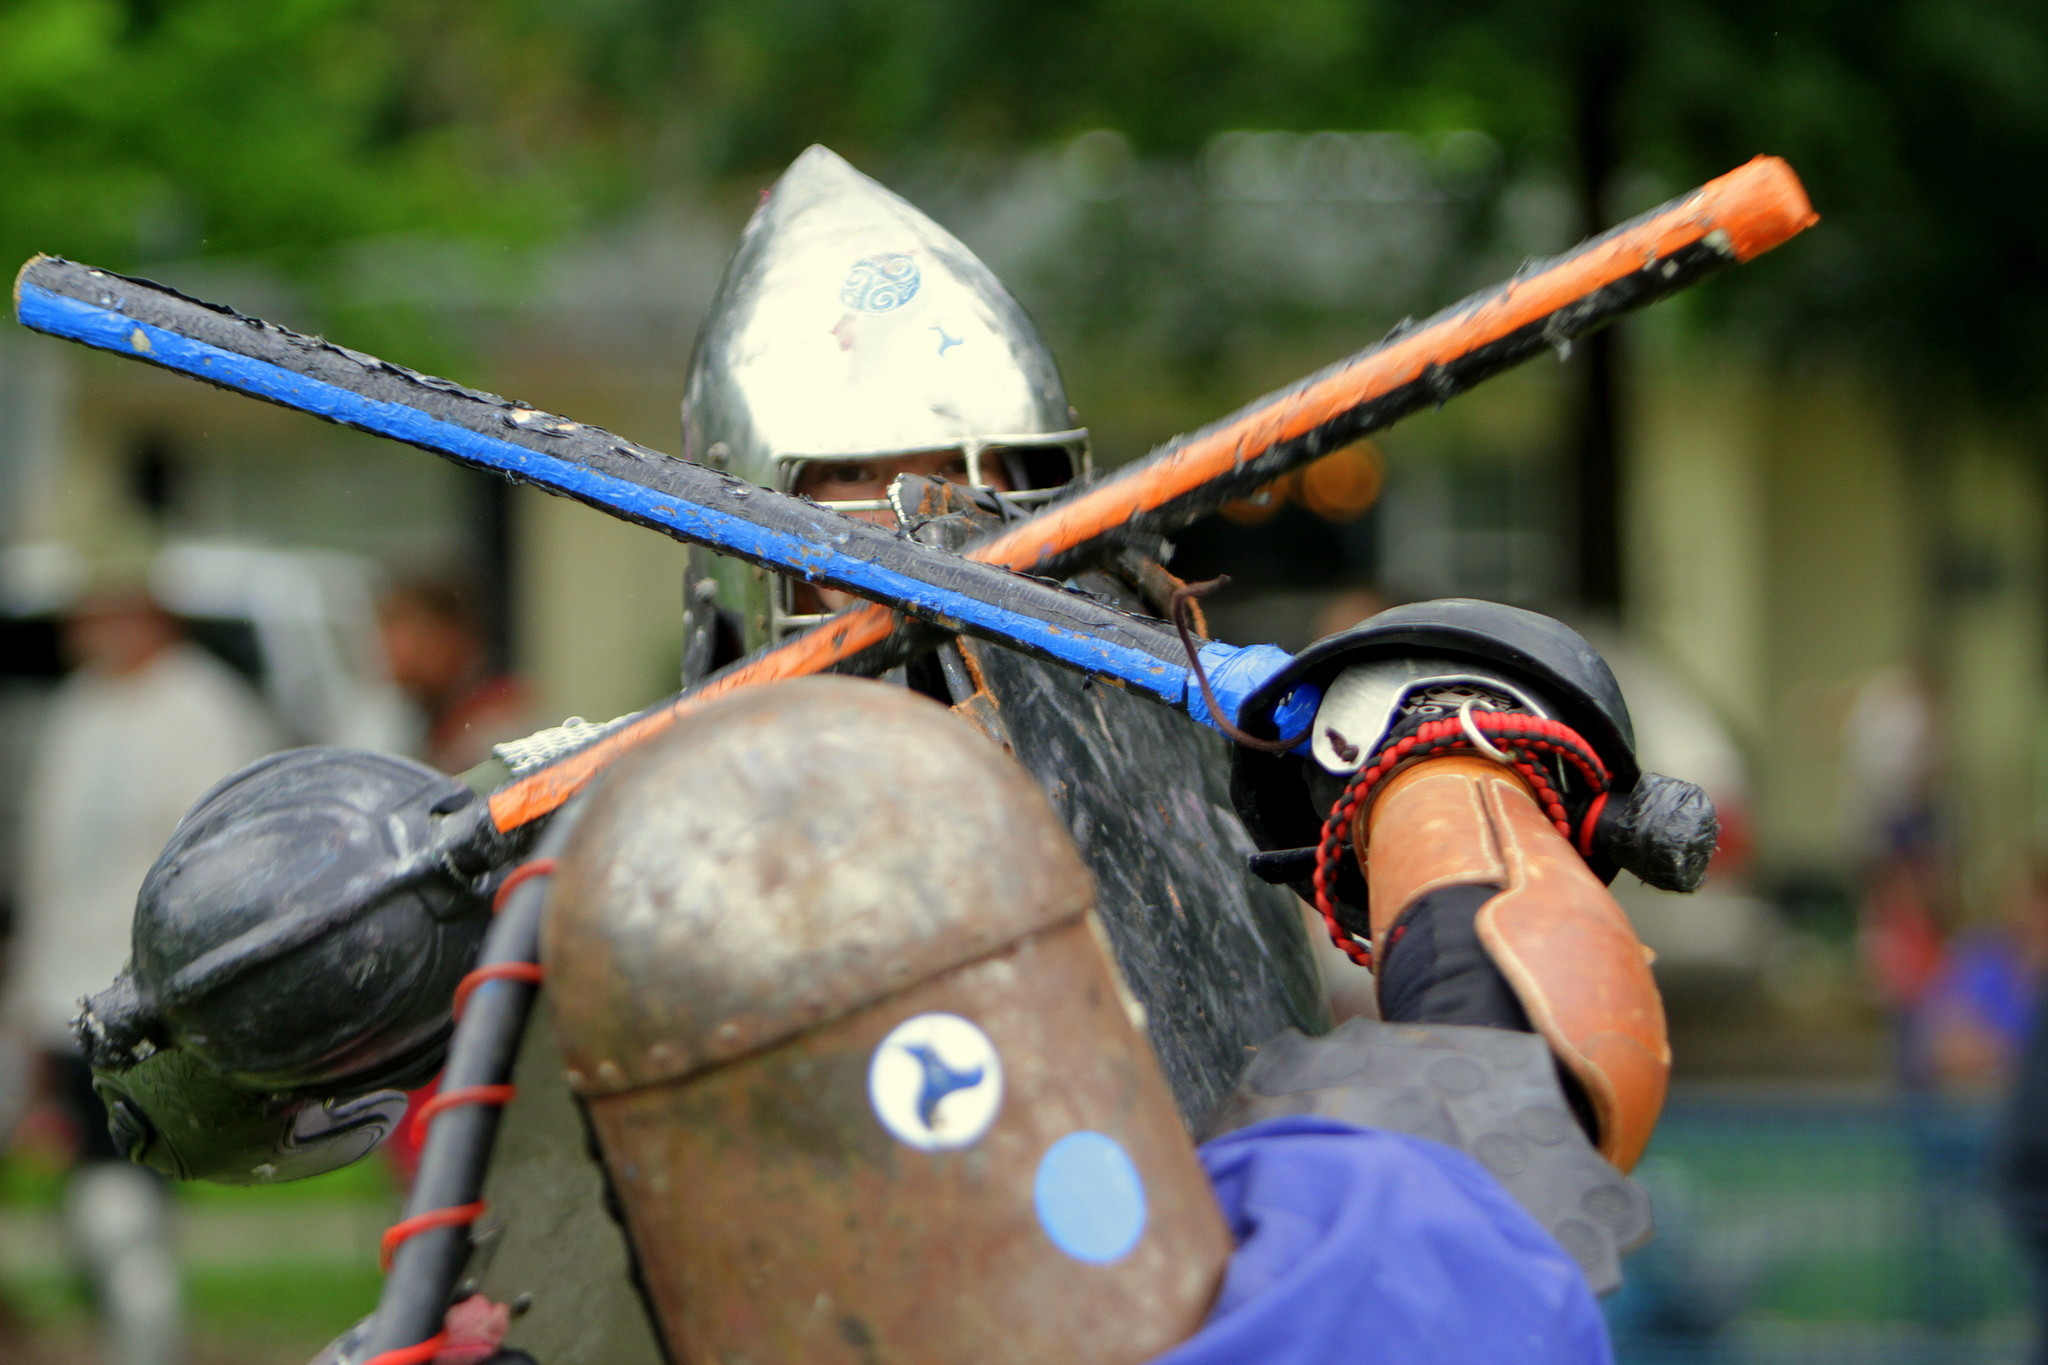 Knights in shining armor fight to the 'death' in Central Florida